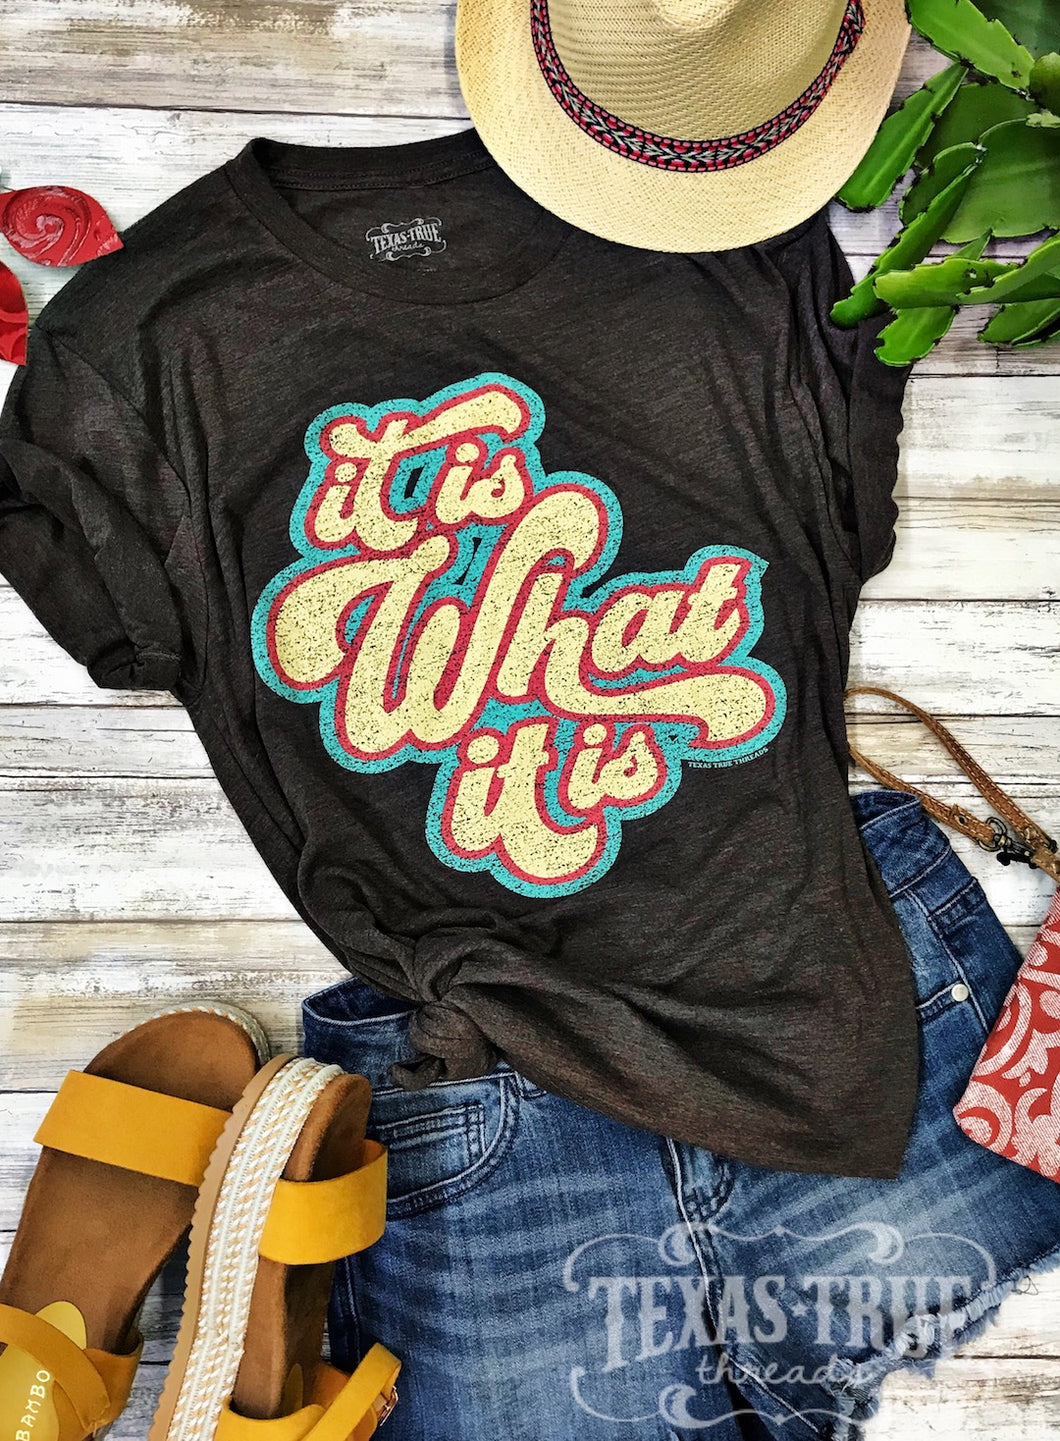 It Is What It Is by Texas True Threads Graphic Tees > 70s > groovy > boho > retro > turquoise > brown > t-shirt > Texas boutique > Texas True Threads > plus size > cotton blend > soft  Texas True Threads - Horse Creek Boutique